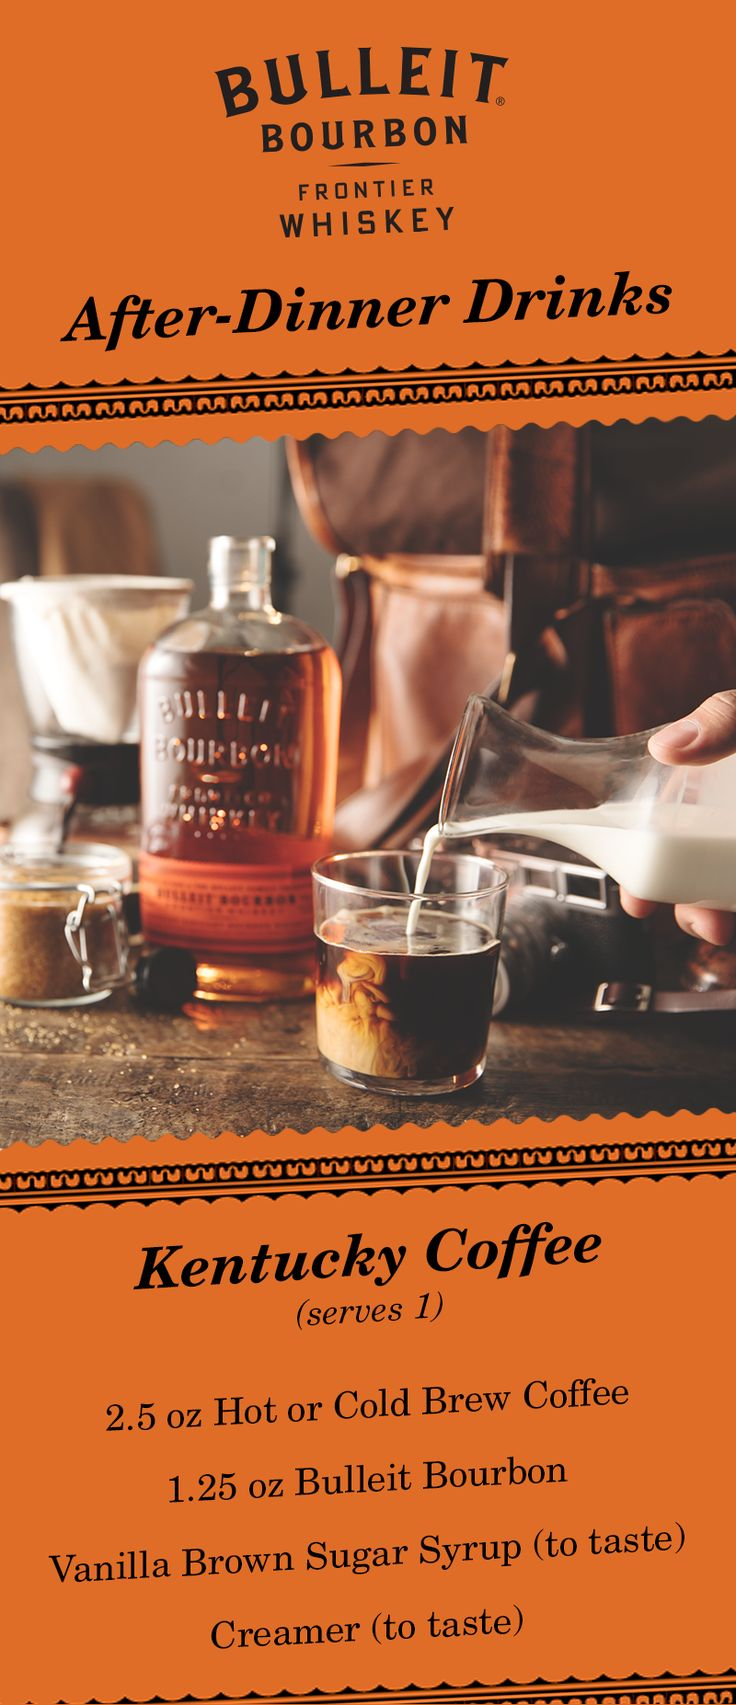 With hints of toffee, oak, nutmeg, and vanilla—Kentucky Coffee is the perfect after dinner drink. Try the recipe: 2.5 oz HOT or Cold Brew Coffee, 1.25 oz Bulleit Bourbon, Vanilla Brown Sugar (to taste), and creamer (to taste).   For Vanilla Brown Sugar Syrup: use 1 cup of Water, 1 cup of, Brown Sugar, 1 Vanilla Bean, and split in half. Stir water till the brown sugar dissolves, let simmer for 5 minutes. Cool and store in the fridge for an hour then strain through a sieve and discard the…